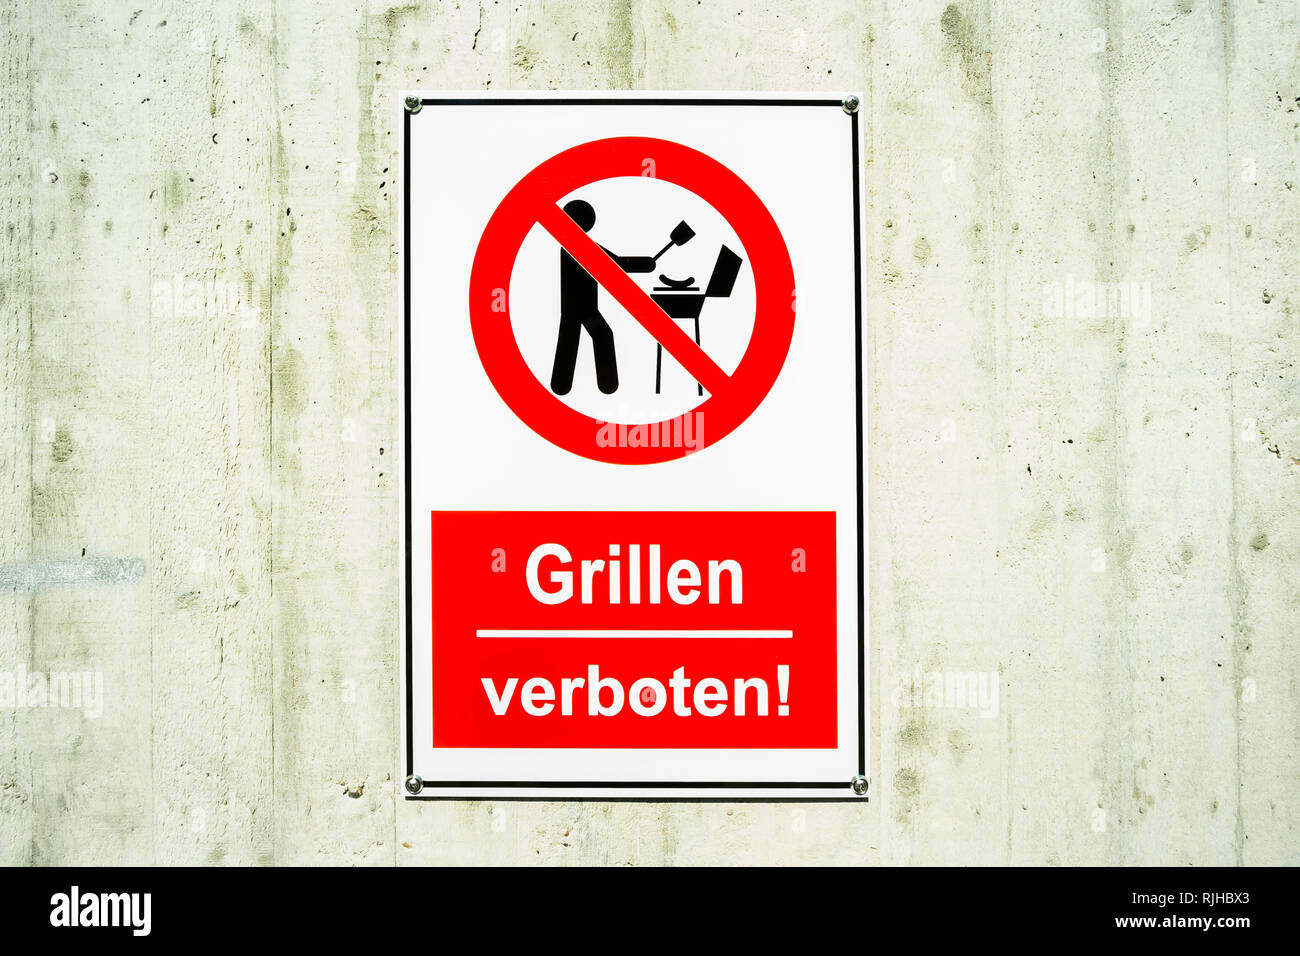 sign: with pictogram and text: 'Grillen verboten!', 'No grilling' - Stock Image